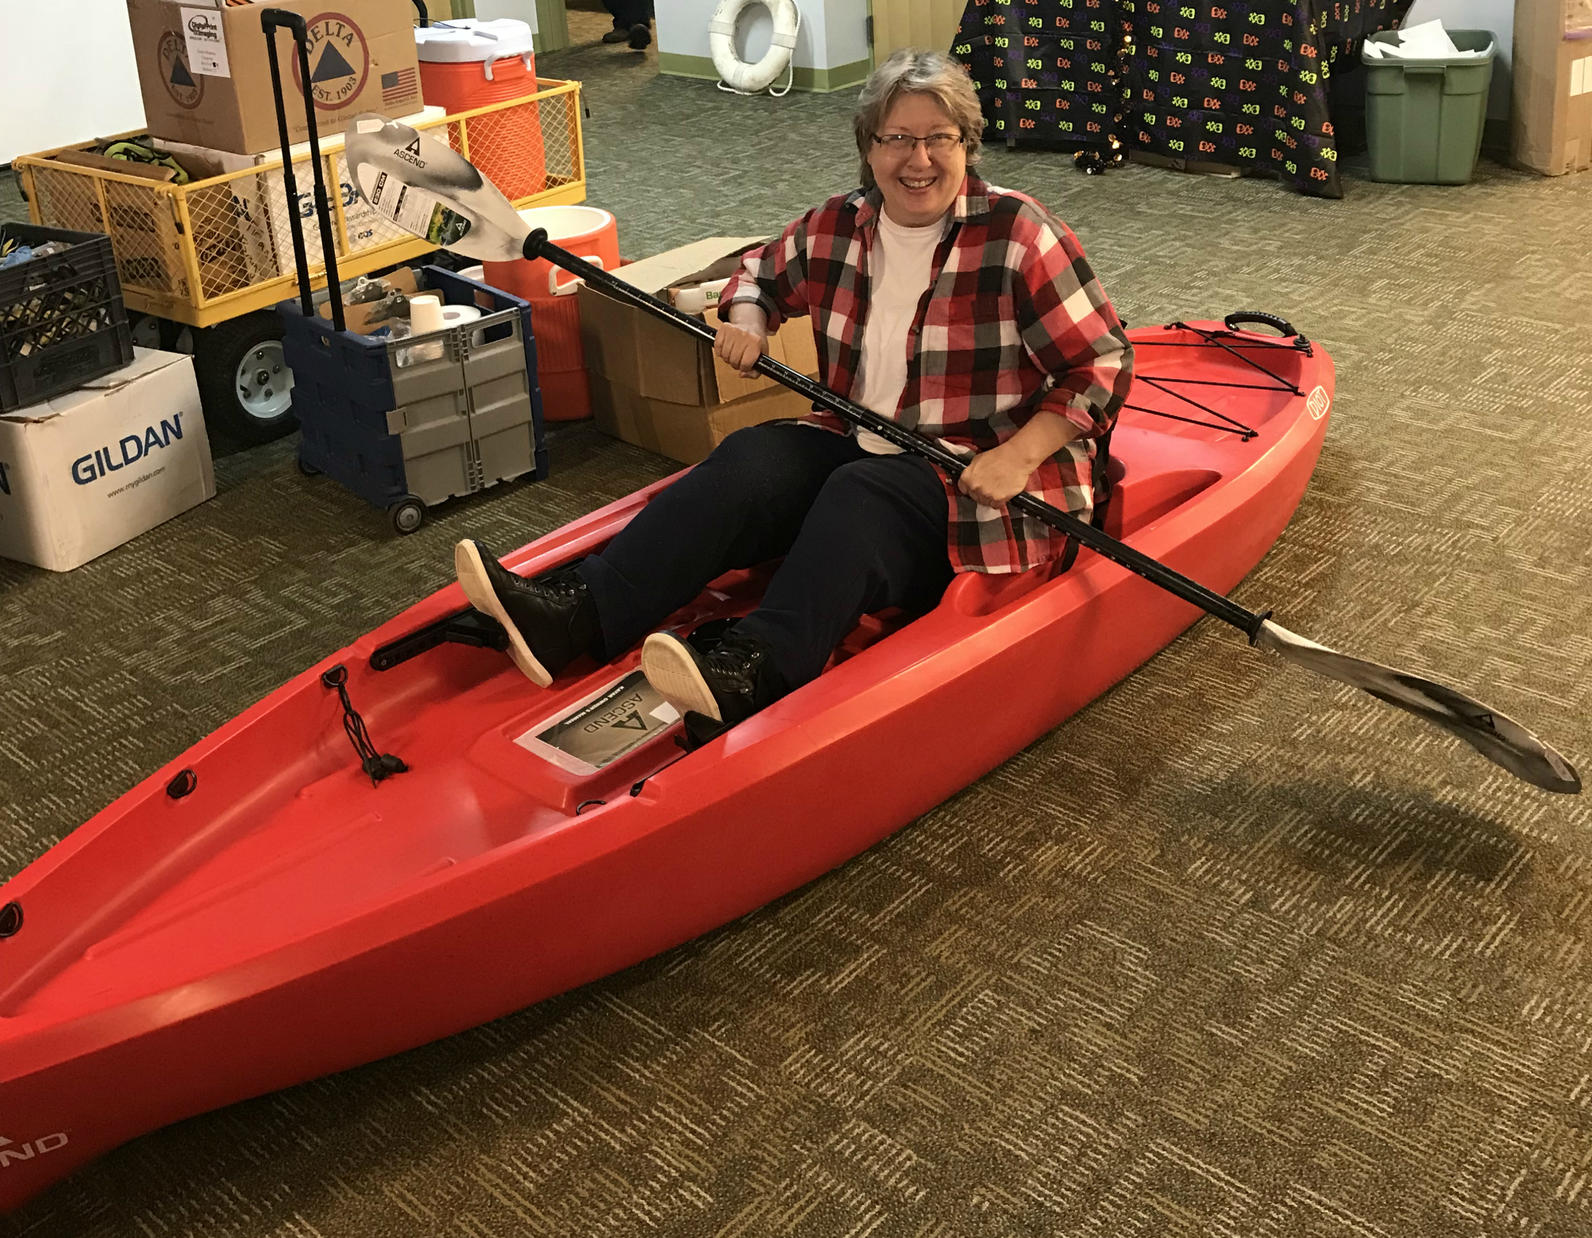 FoFC Kayak Winner 2018